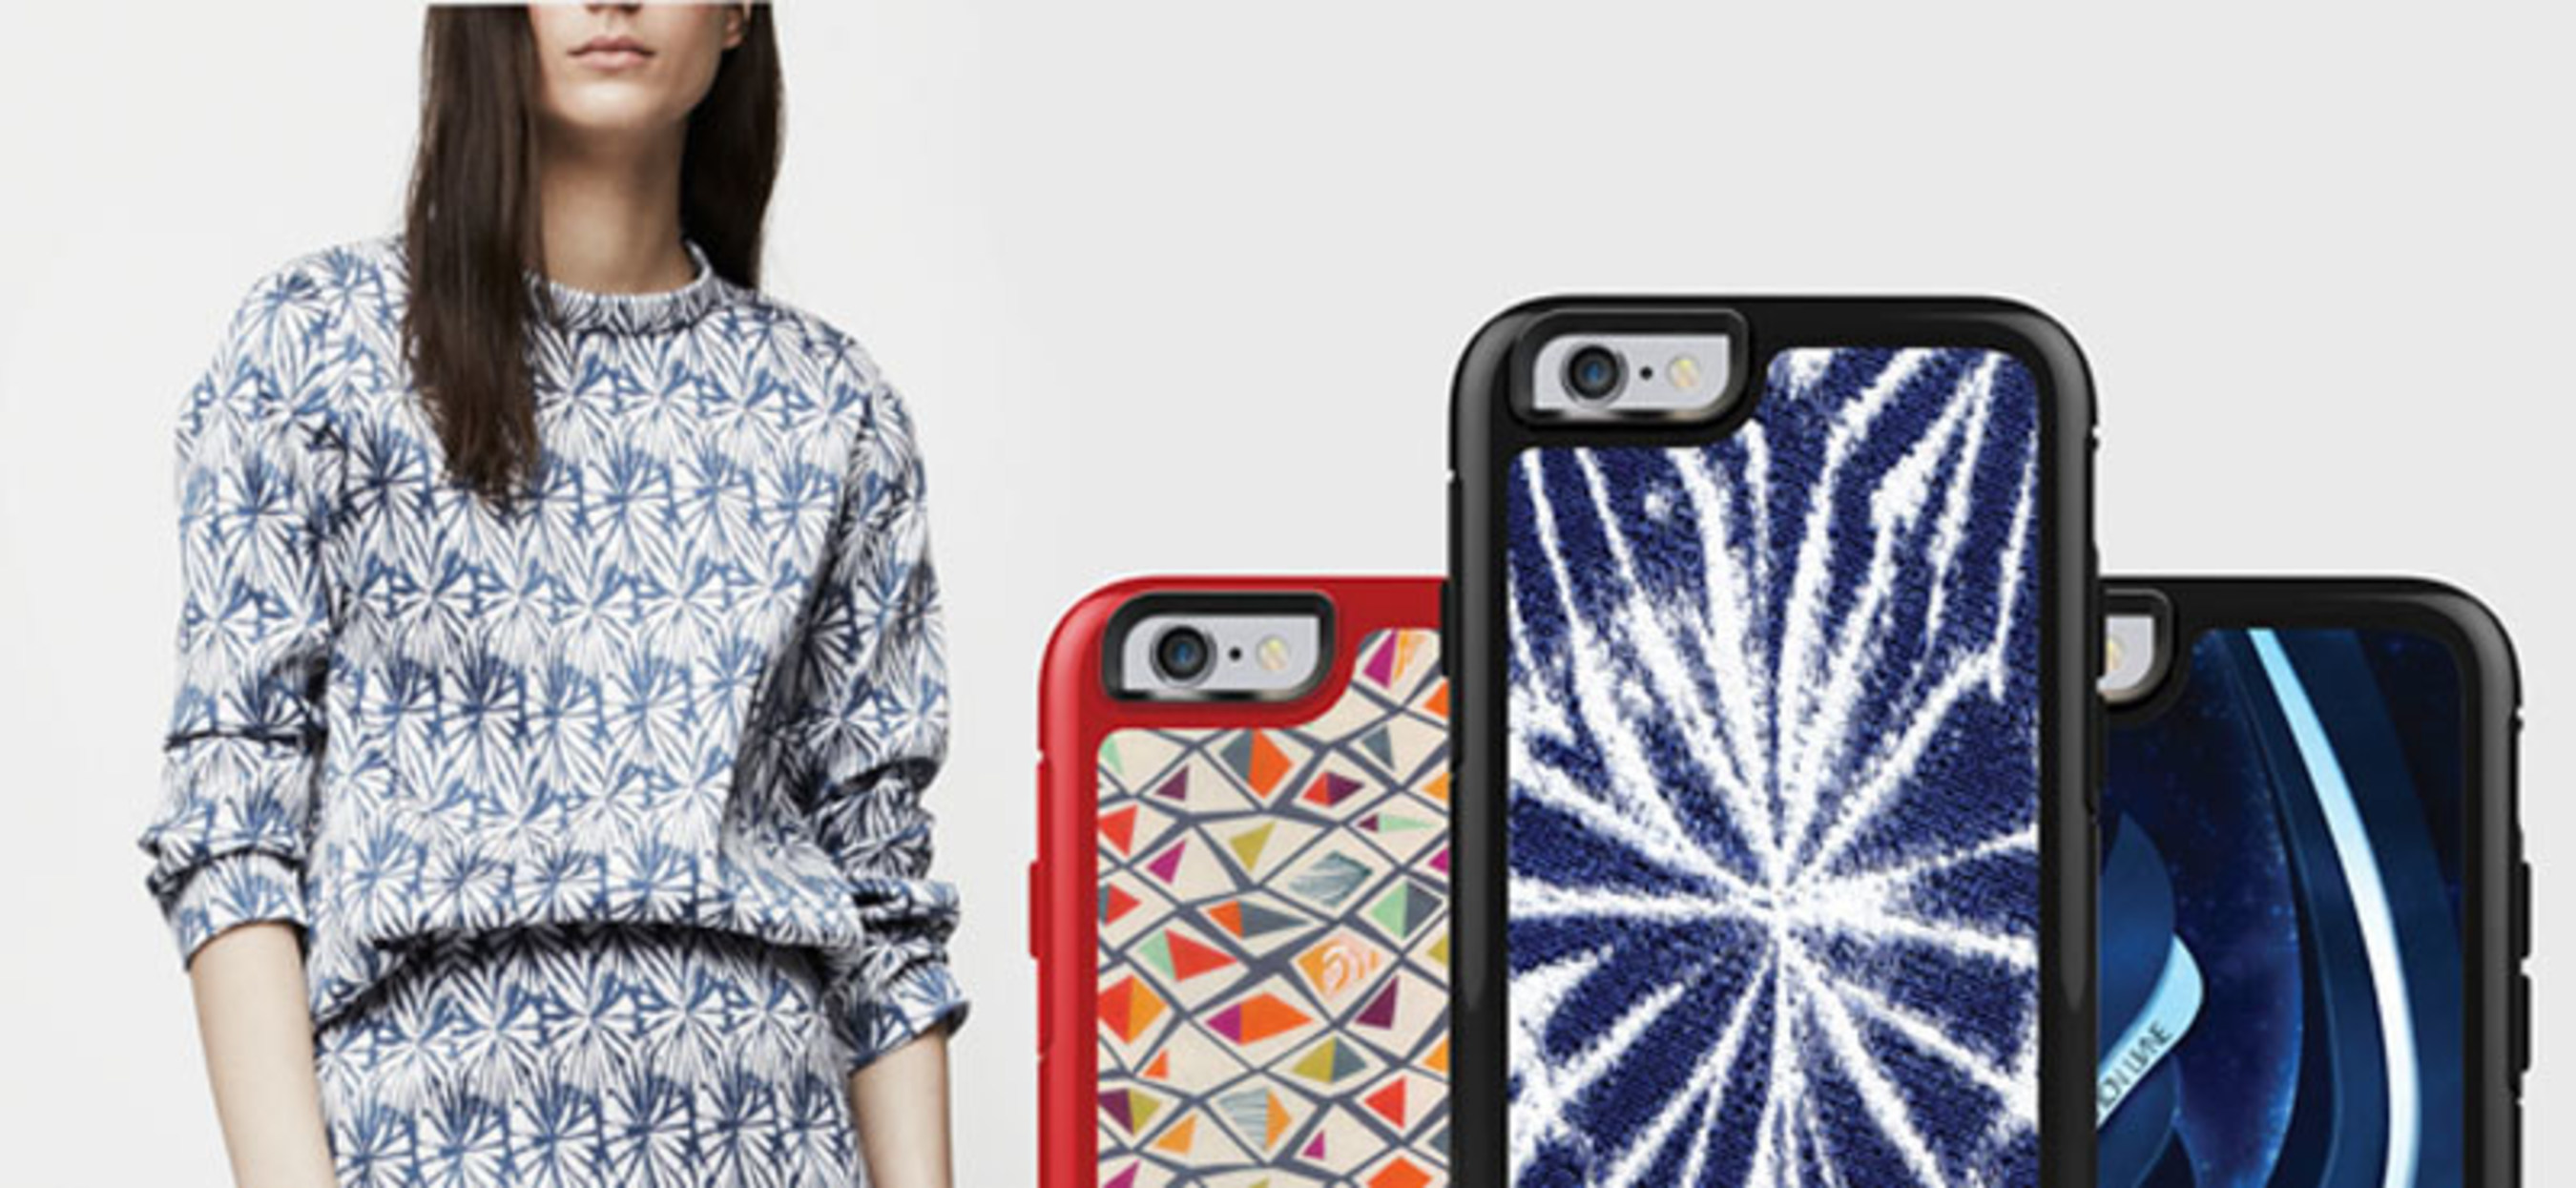 OtterBox Makes the Case for Self Expression with MySymmetry Series Cases